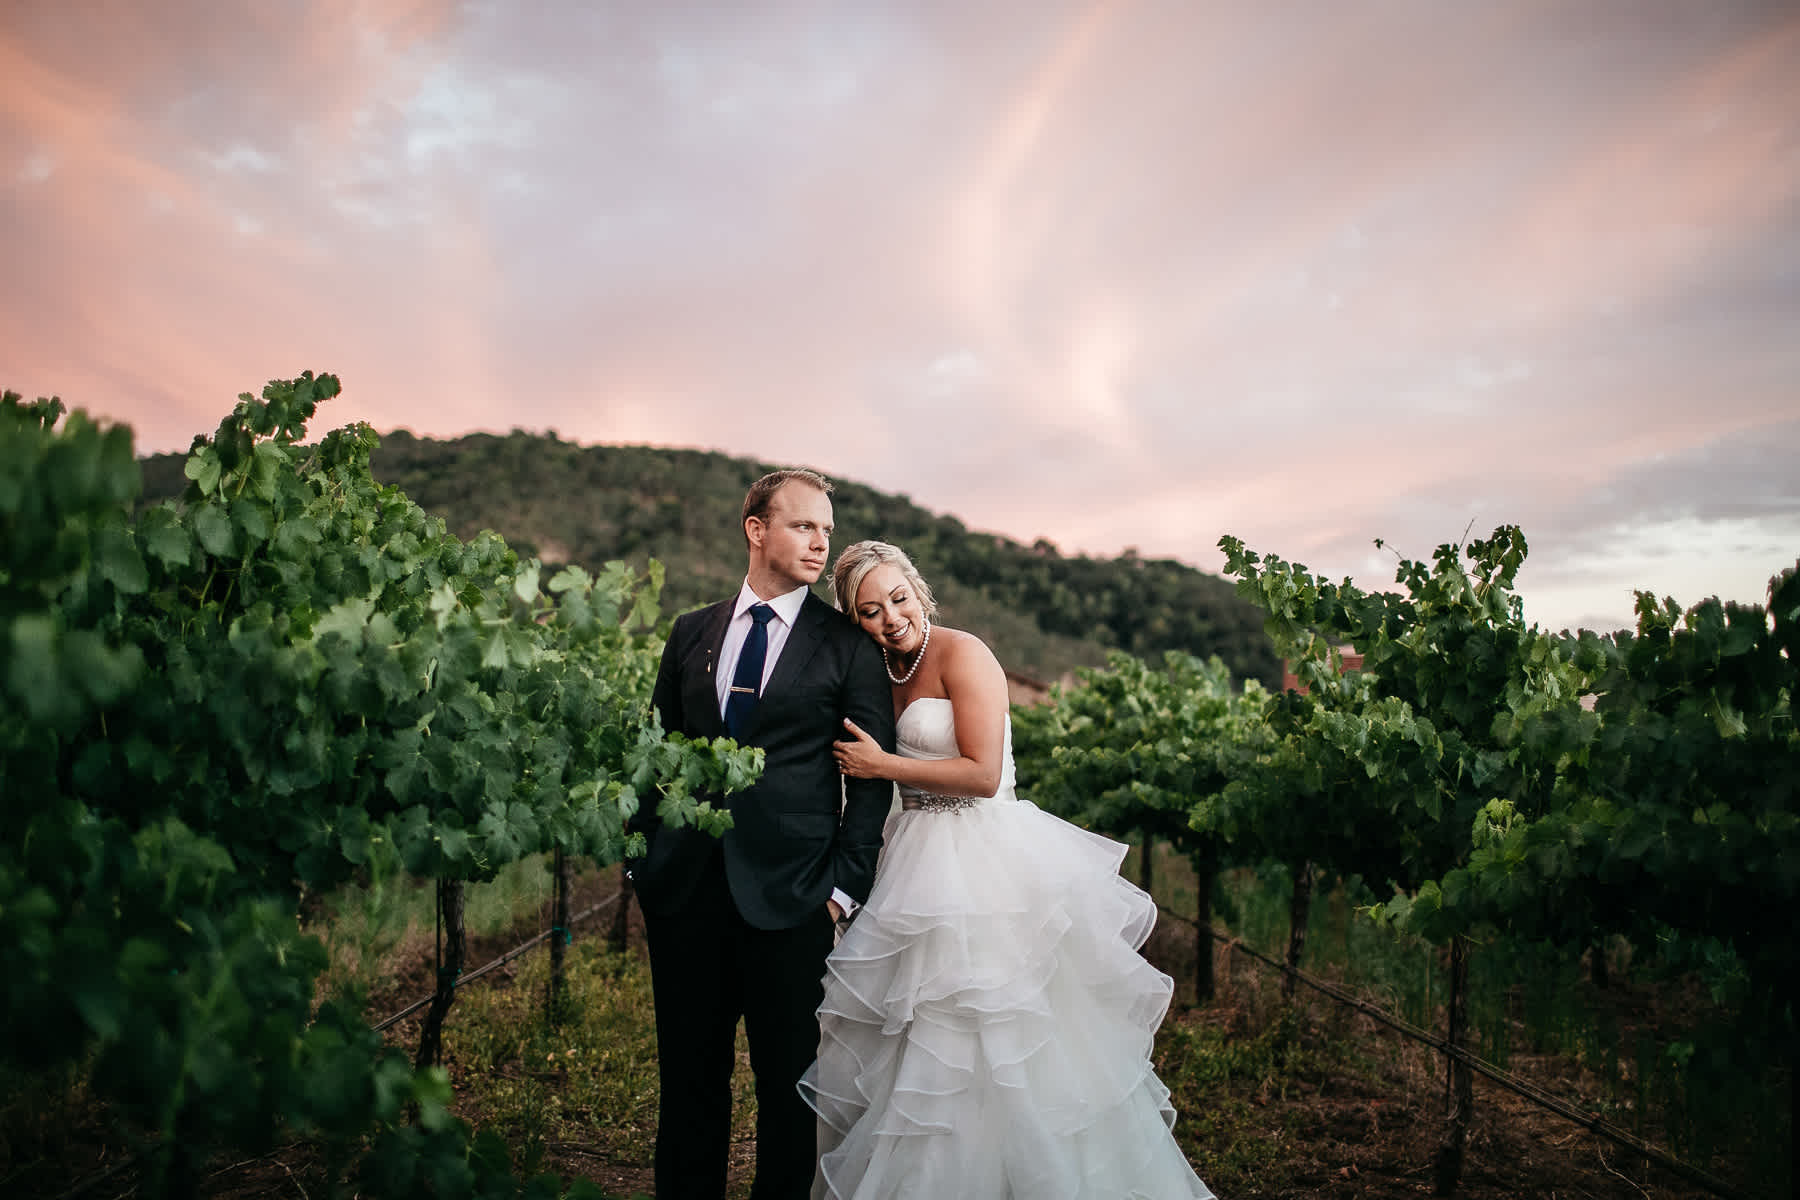 kirigin-cellars-gilroy-summer-sunset-wedding-86